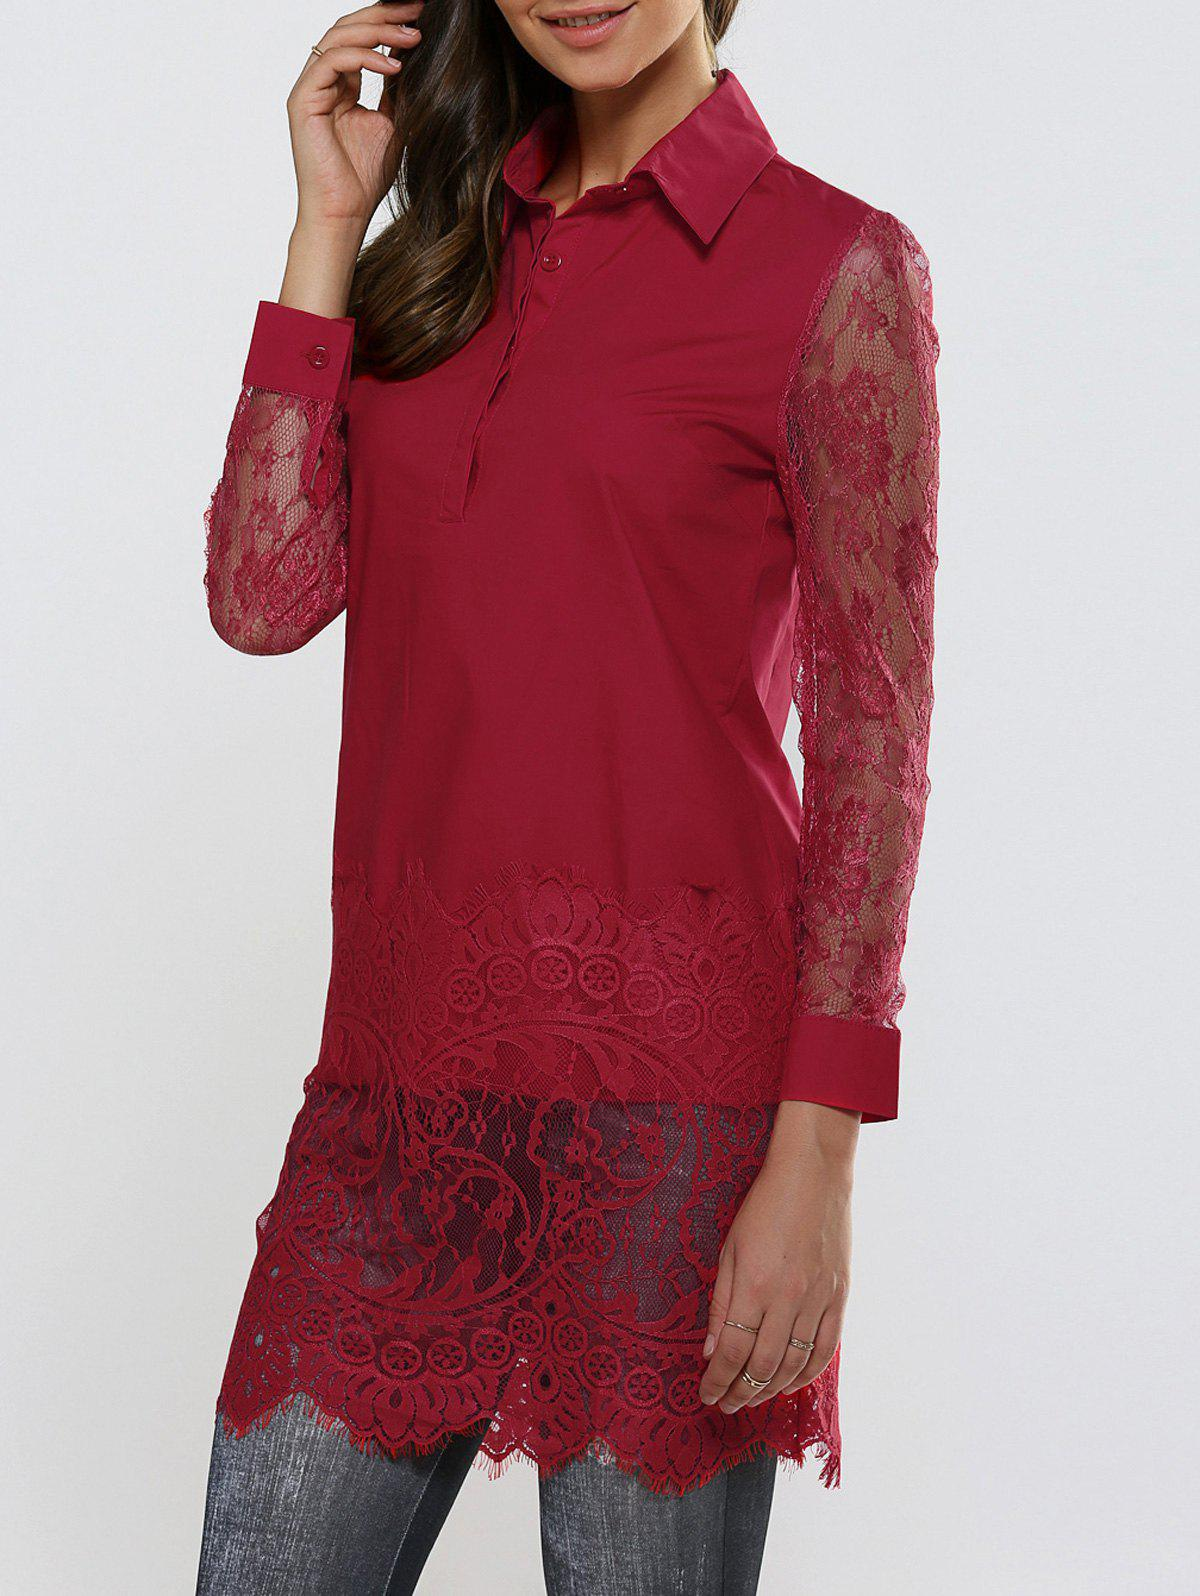 Sheer Lace Panel Long Sleeve Scalloped Shirt - DEEP RED XL